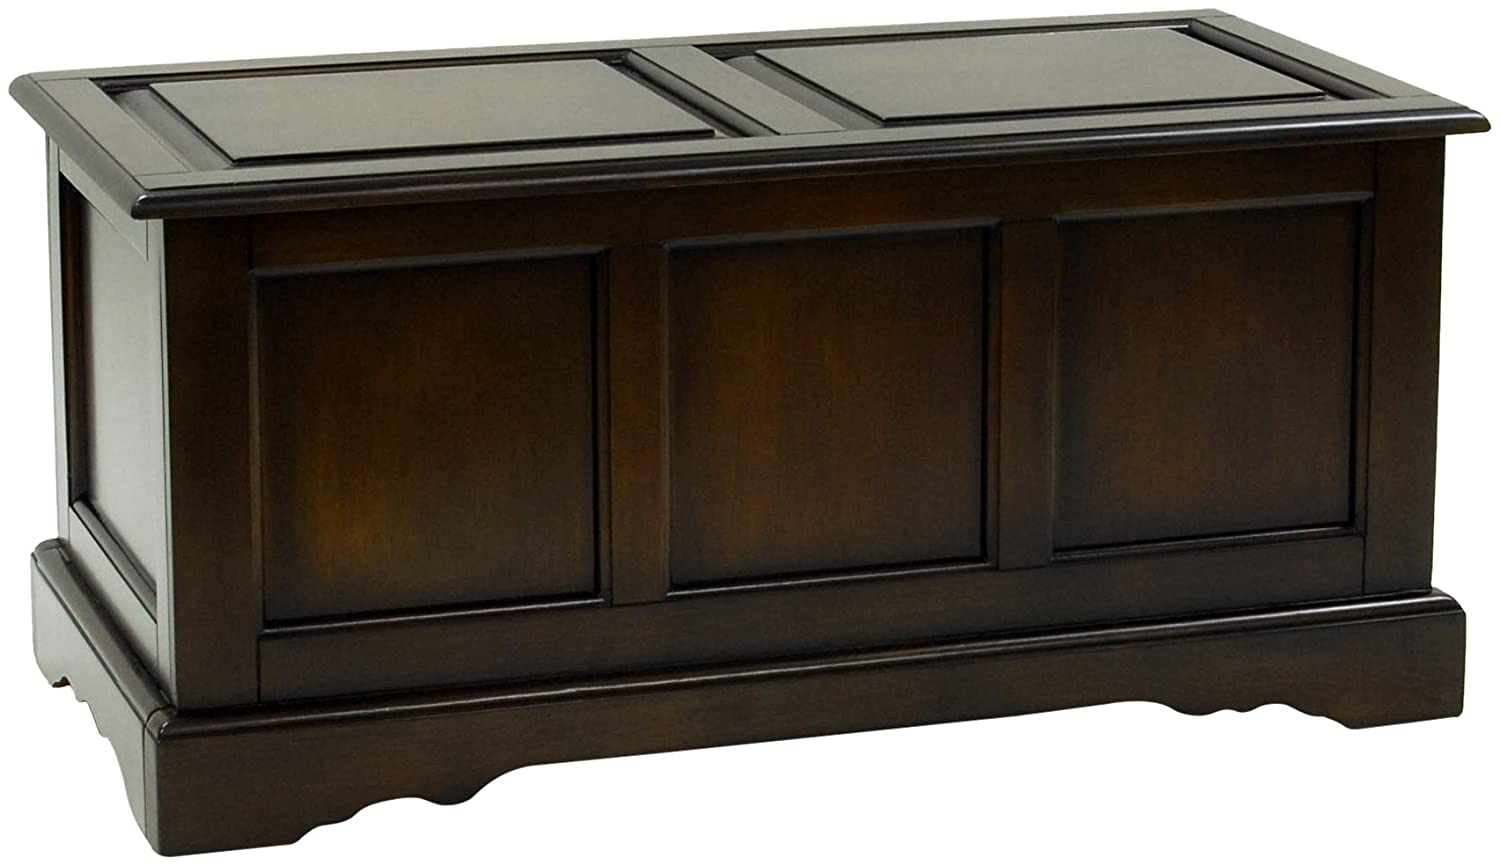 Elegant Amazon.com: Carolina Chair And Table Camden Blanket Chest: Kitchen U0026 Dining